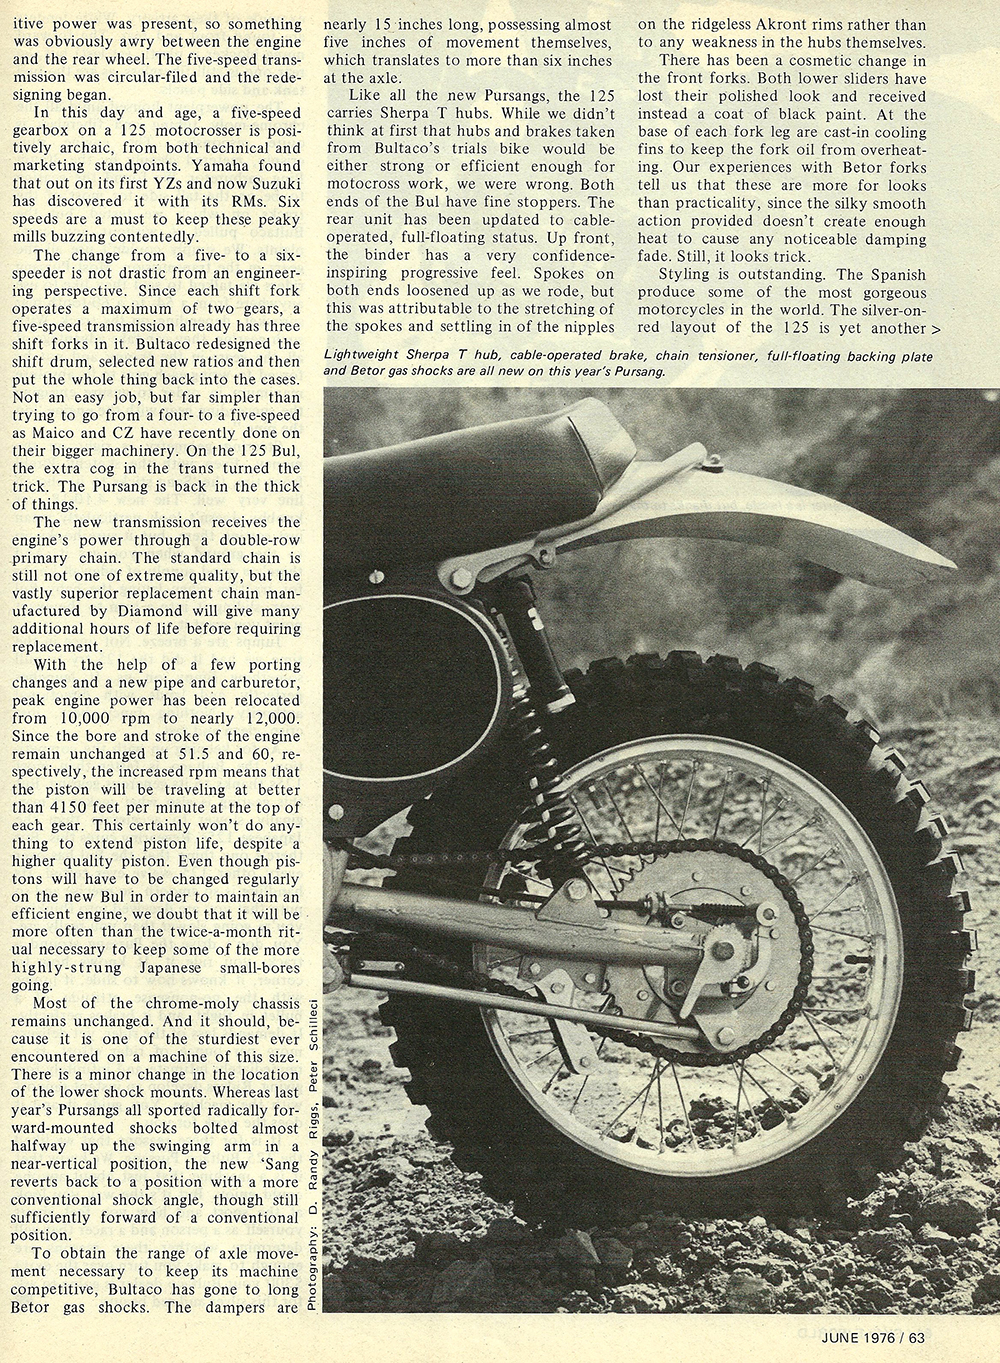 1976 Bultaco 125 Pursang road test 04.jpg